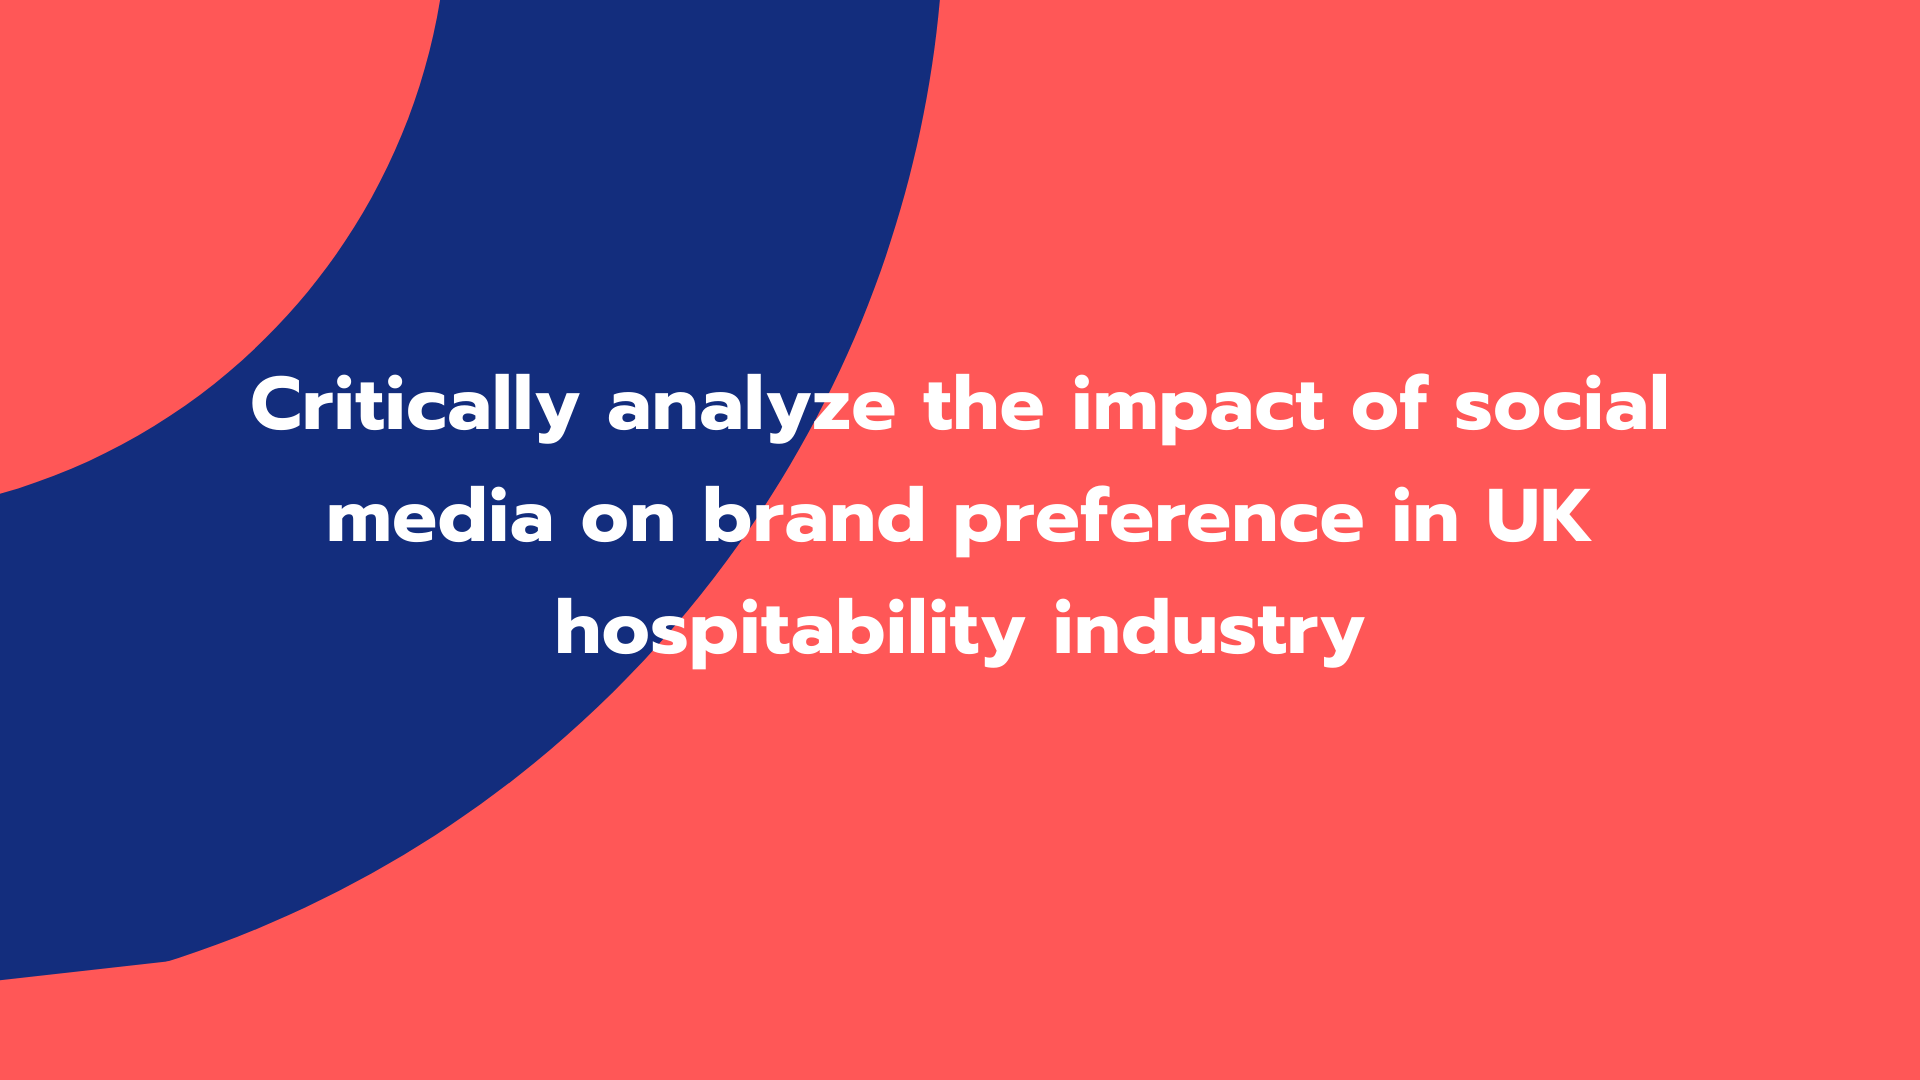 Critically analyze the impact of social media on brand preference in UK hospitability industry